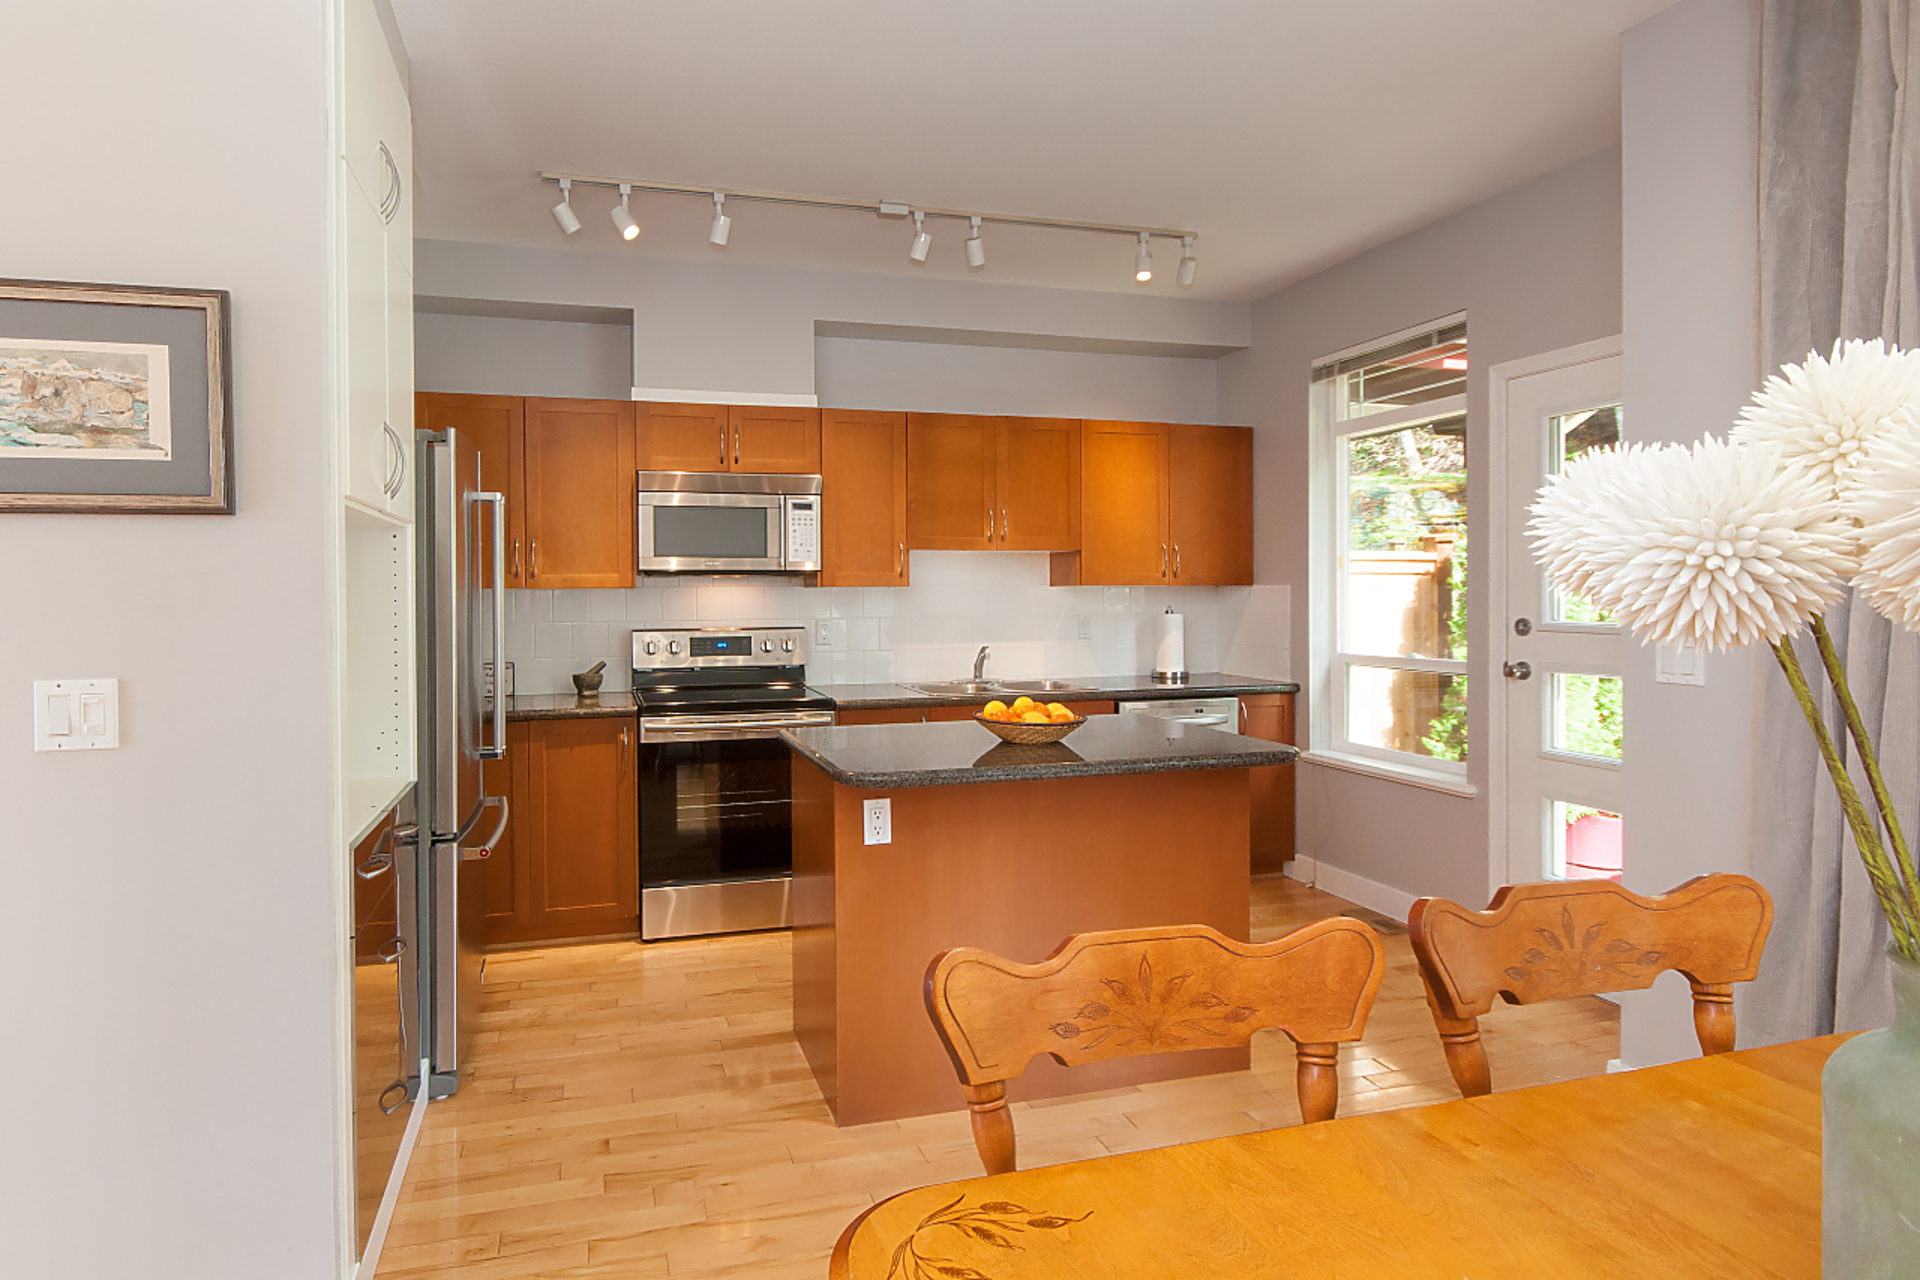 015 at 33 - 15 Forest Park Way, Heritage Woods PM, Port Moody